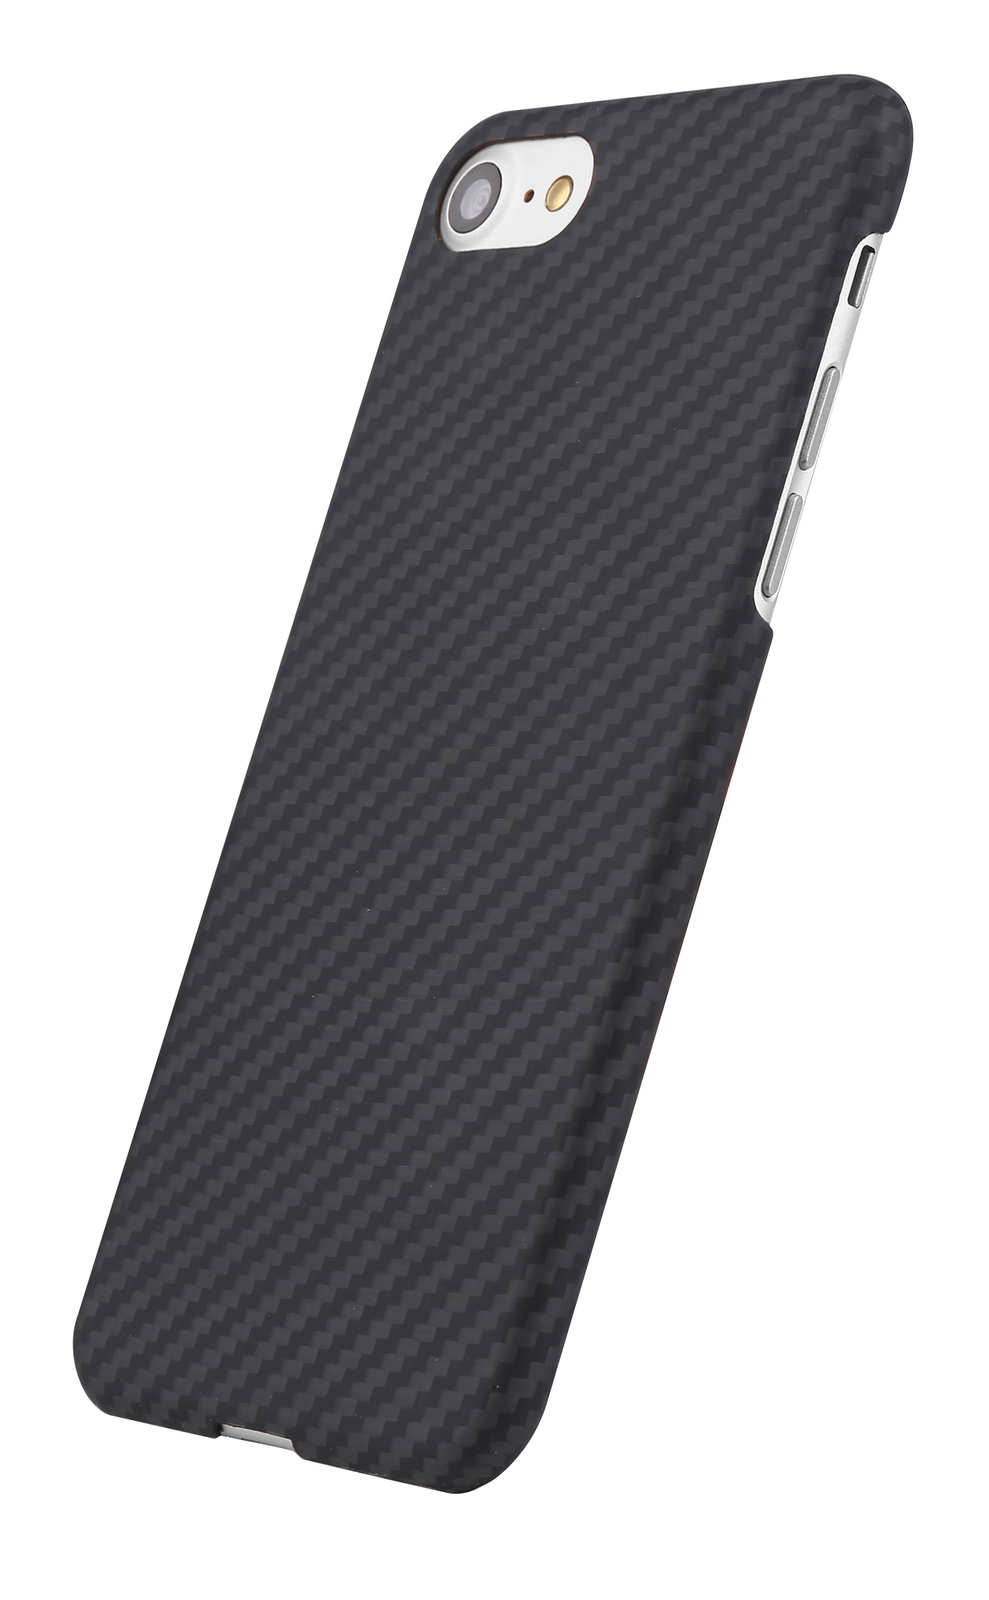 3sixt aramid premium case for iphone 7 black at mighty ape 3sixt aramid premium case for iphone 7 black image